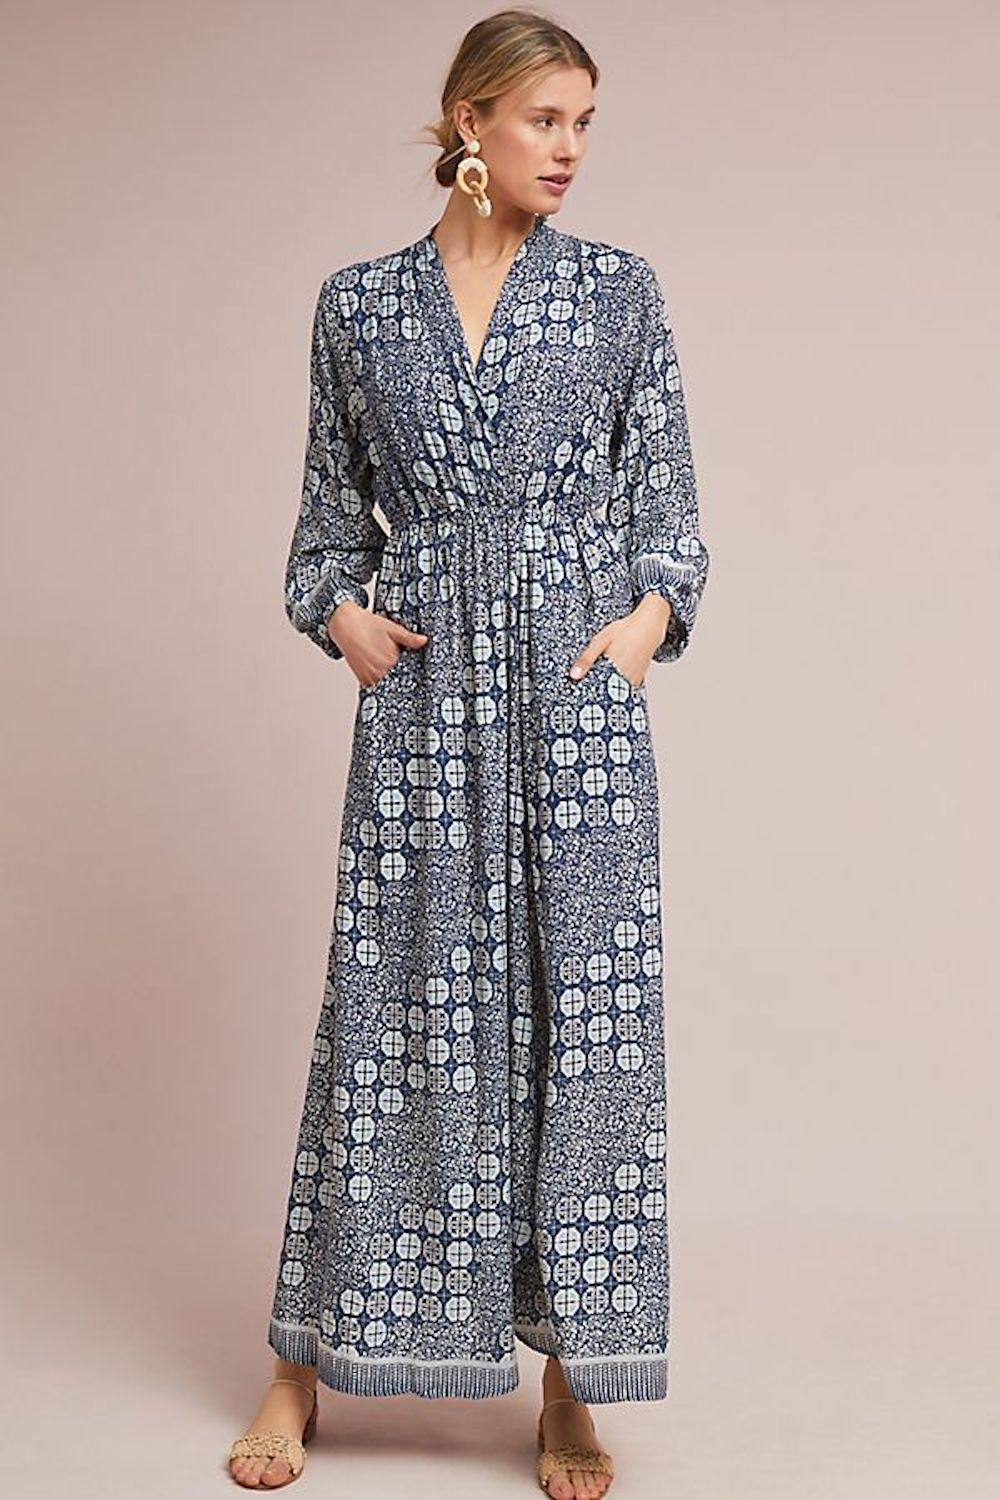 Anthropologie Batik Printed Maxi Dress From Pinterest